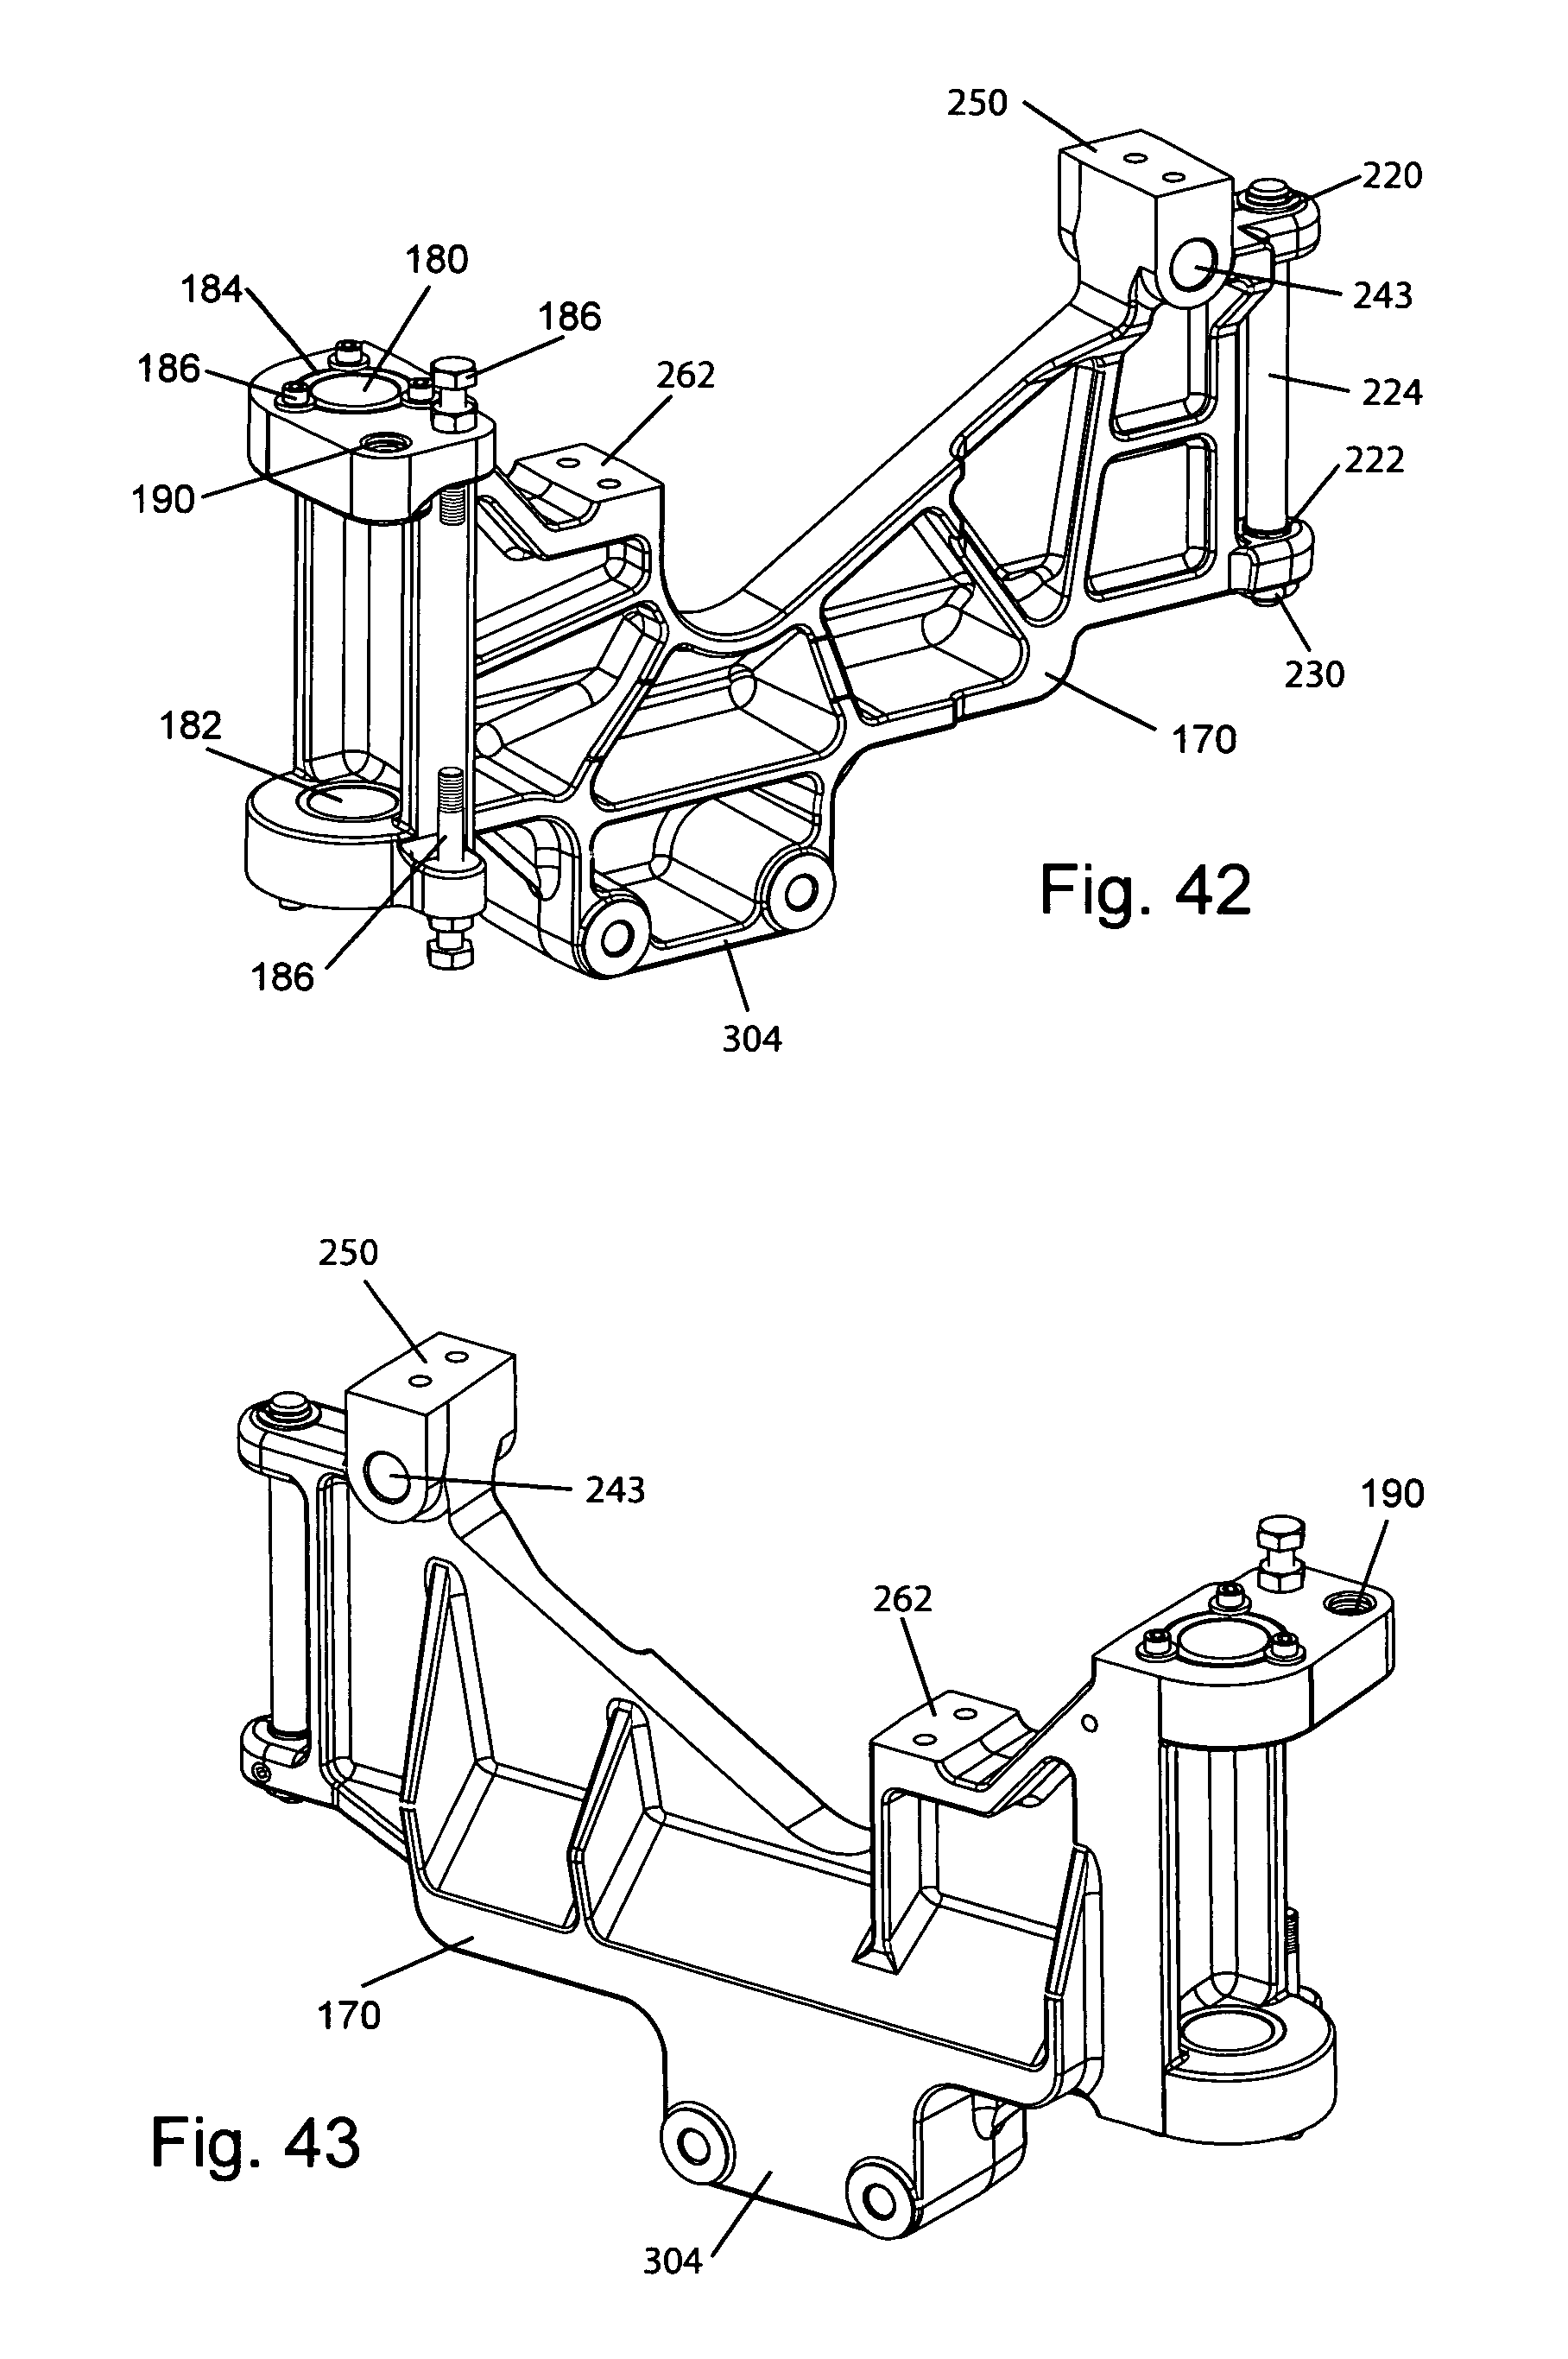 Patent US Table saws with safety systems and systems to